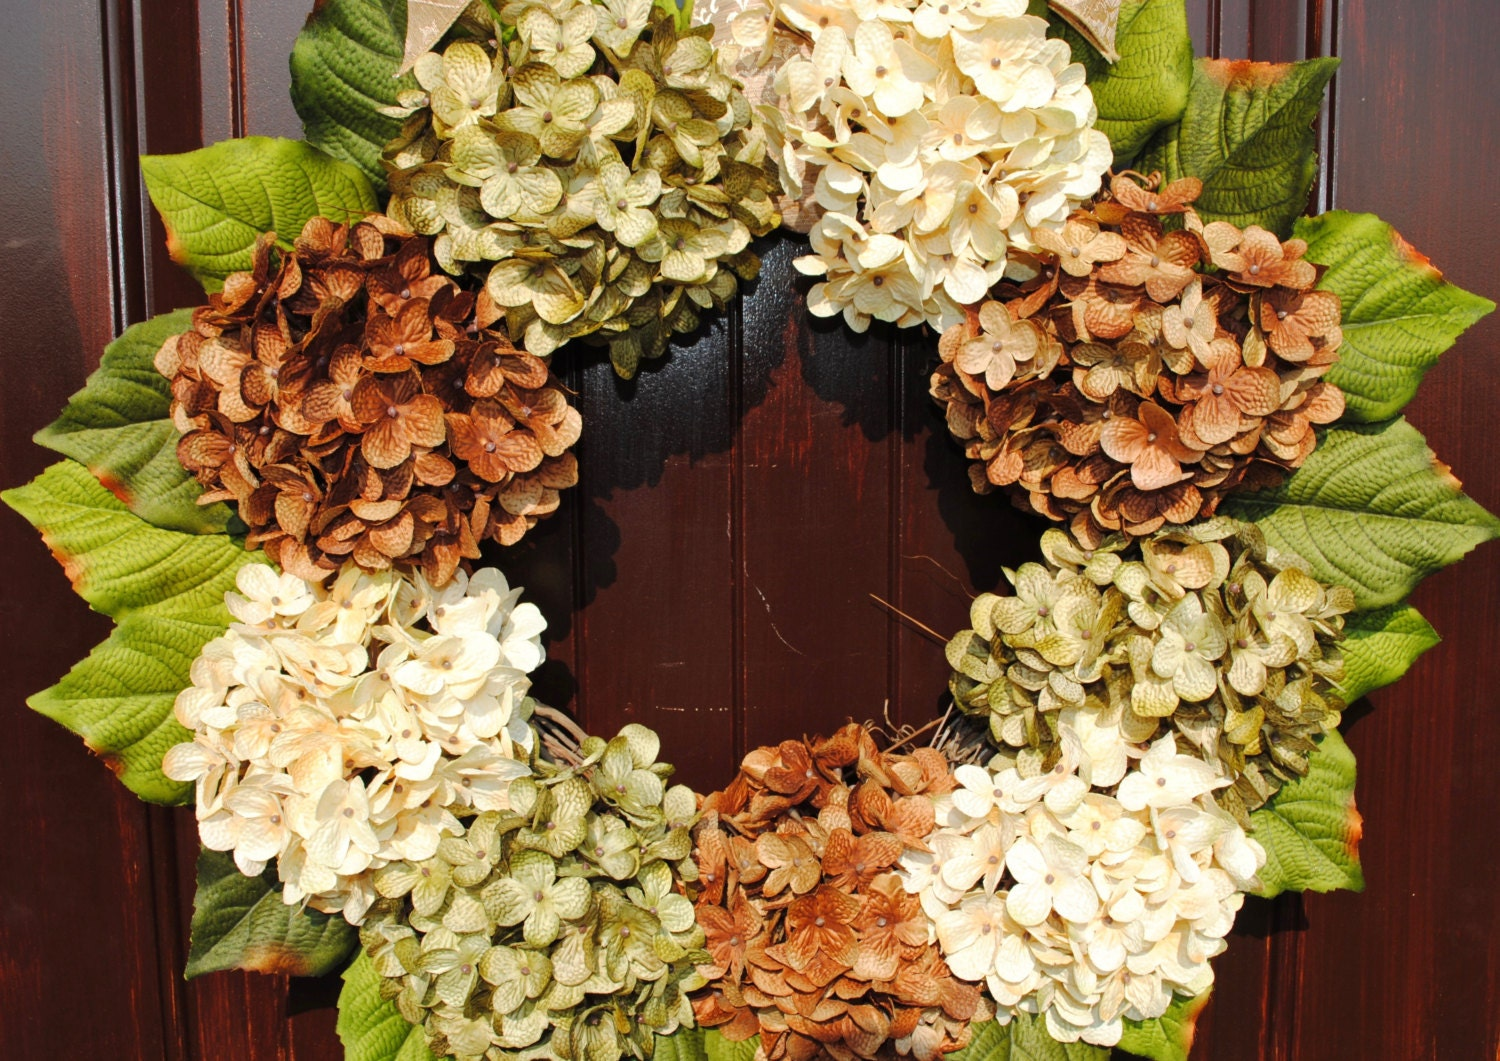 Hydrangea Wreaths For Front Door - Home Design Ideas and Pictures